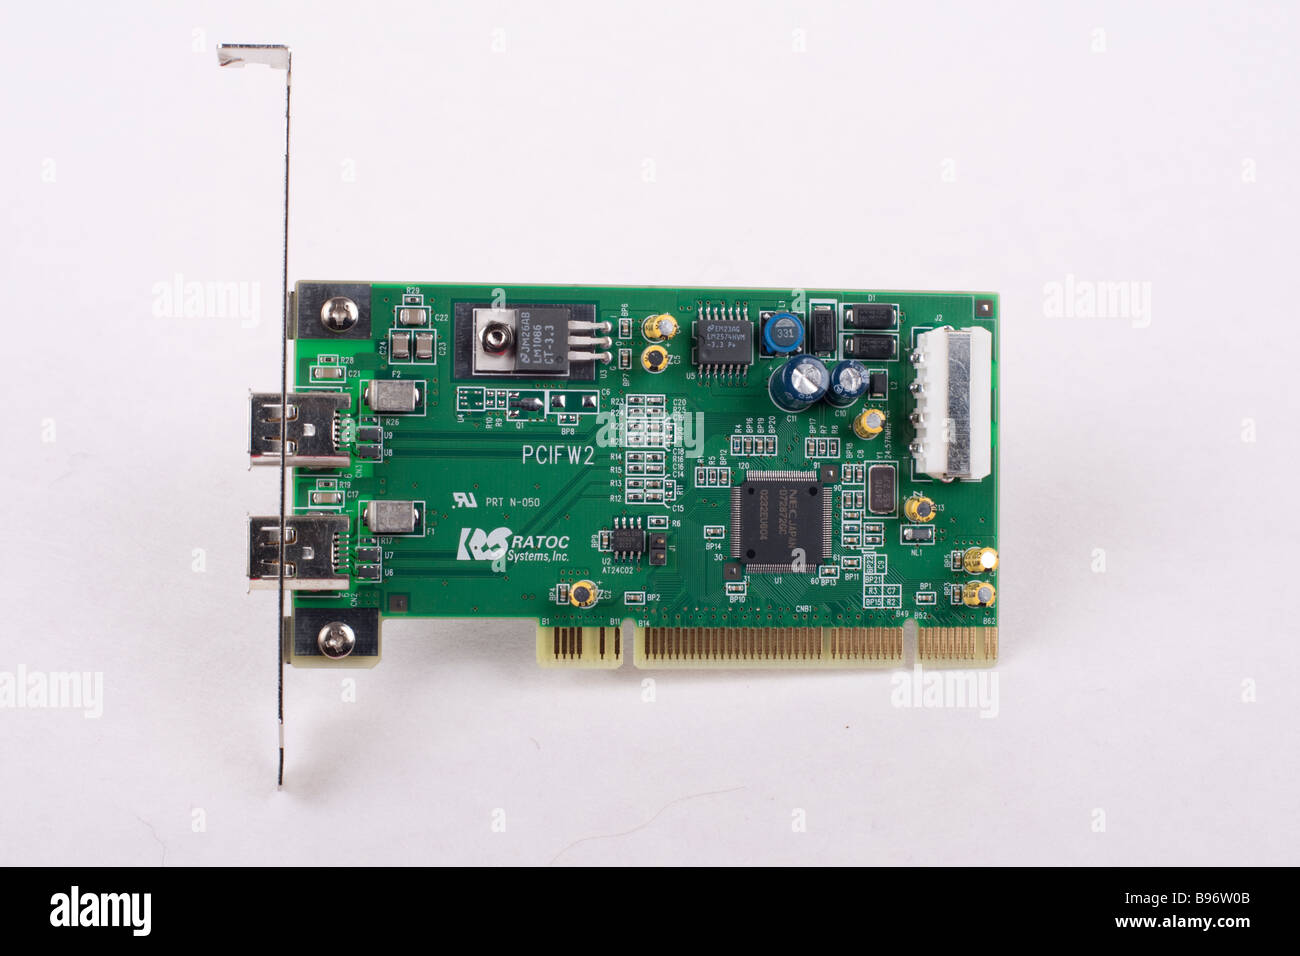 Firewire stock photos firewire stock images alamy ratoc two port firewire pci card for pc computer with box uk stock image buycottarizona